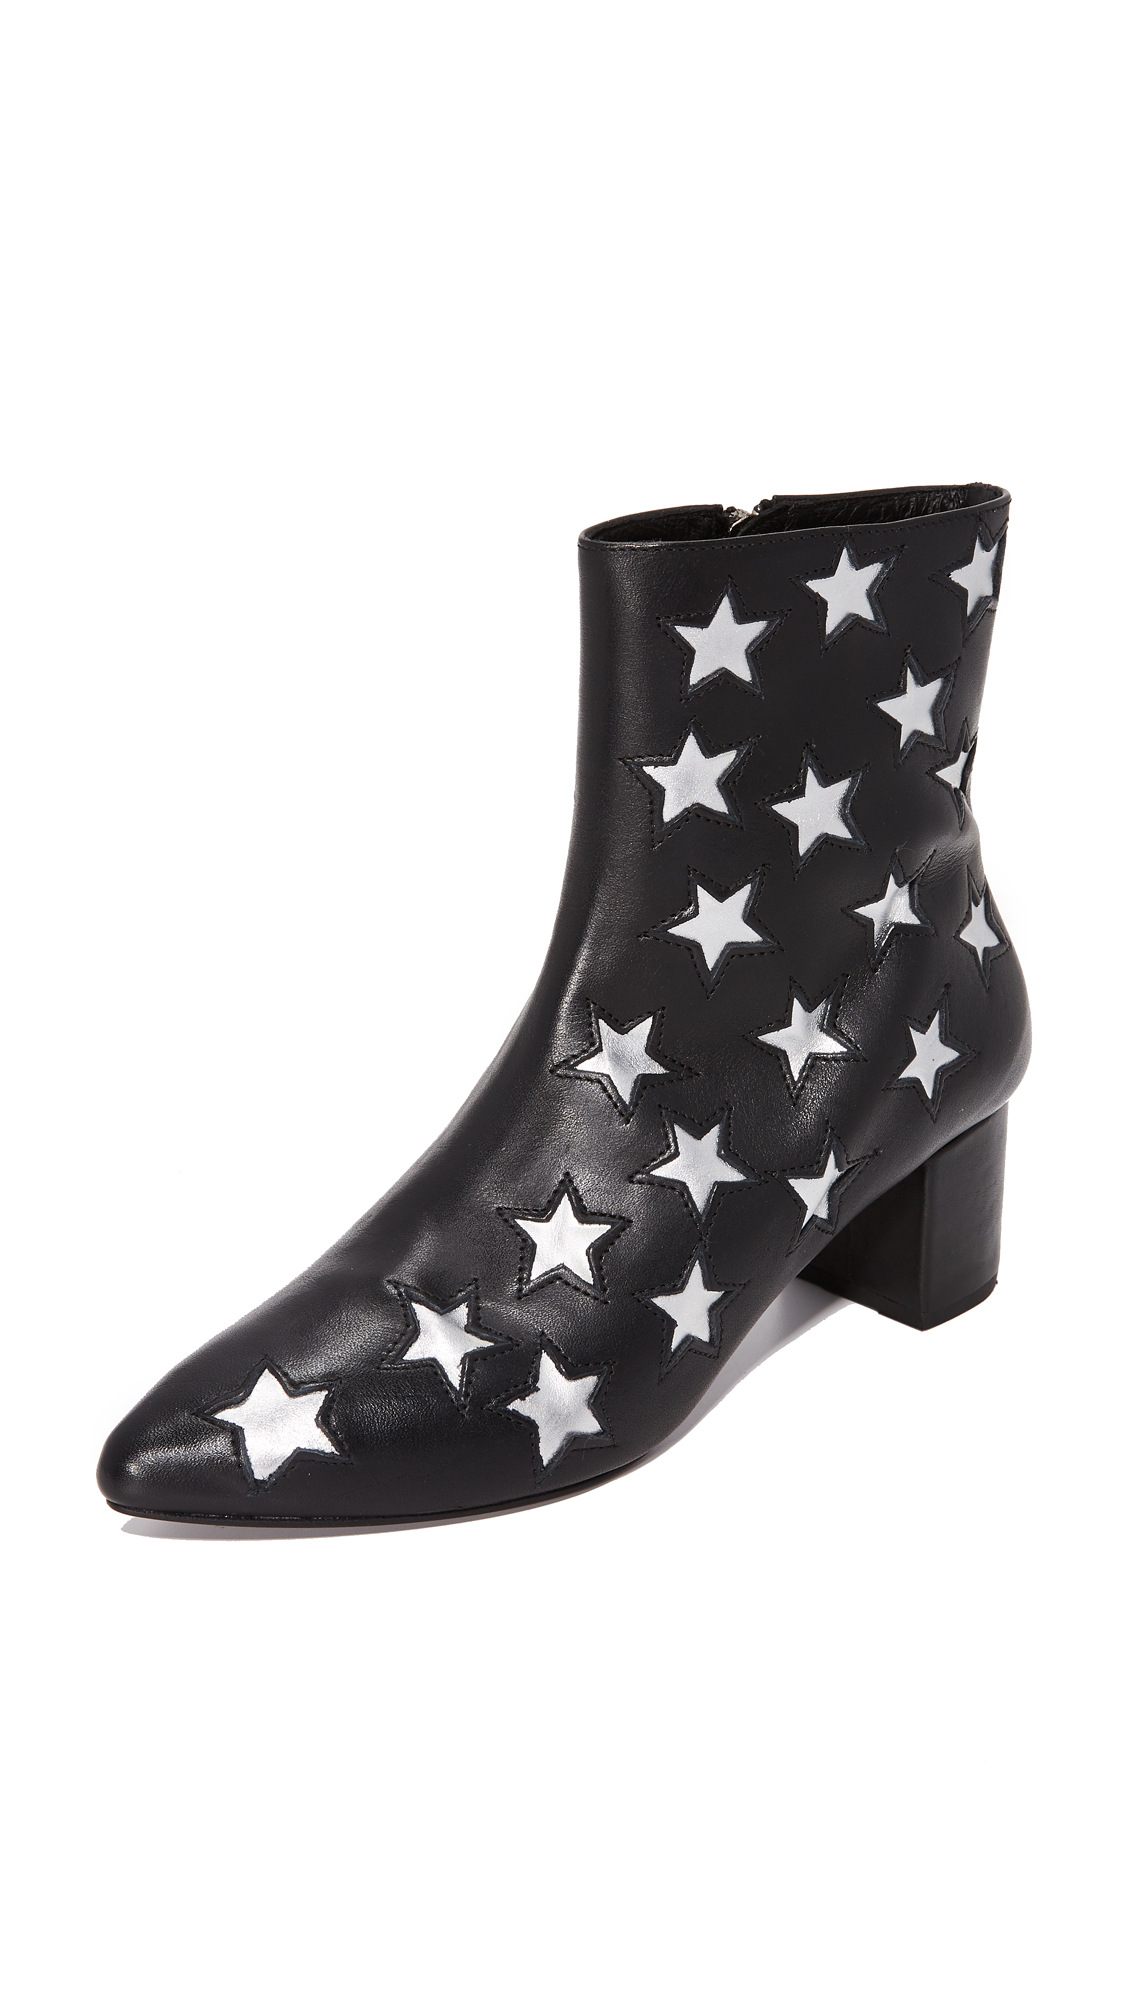 The Archive The Madison Booties - Black/Silver